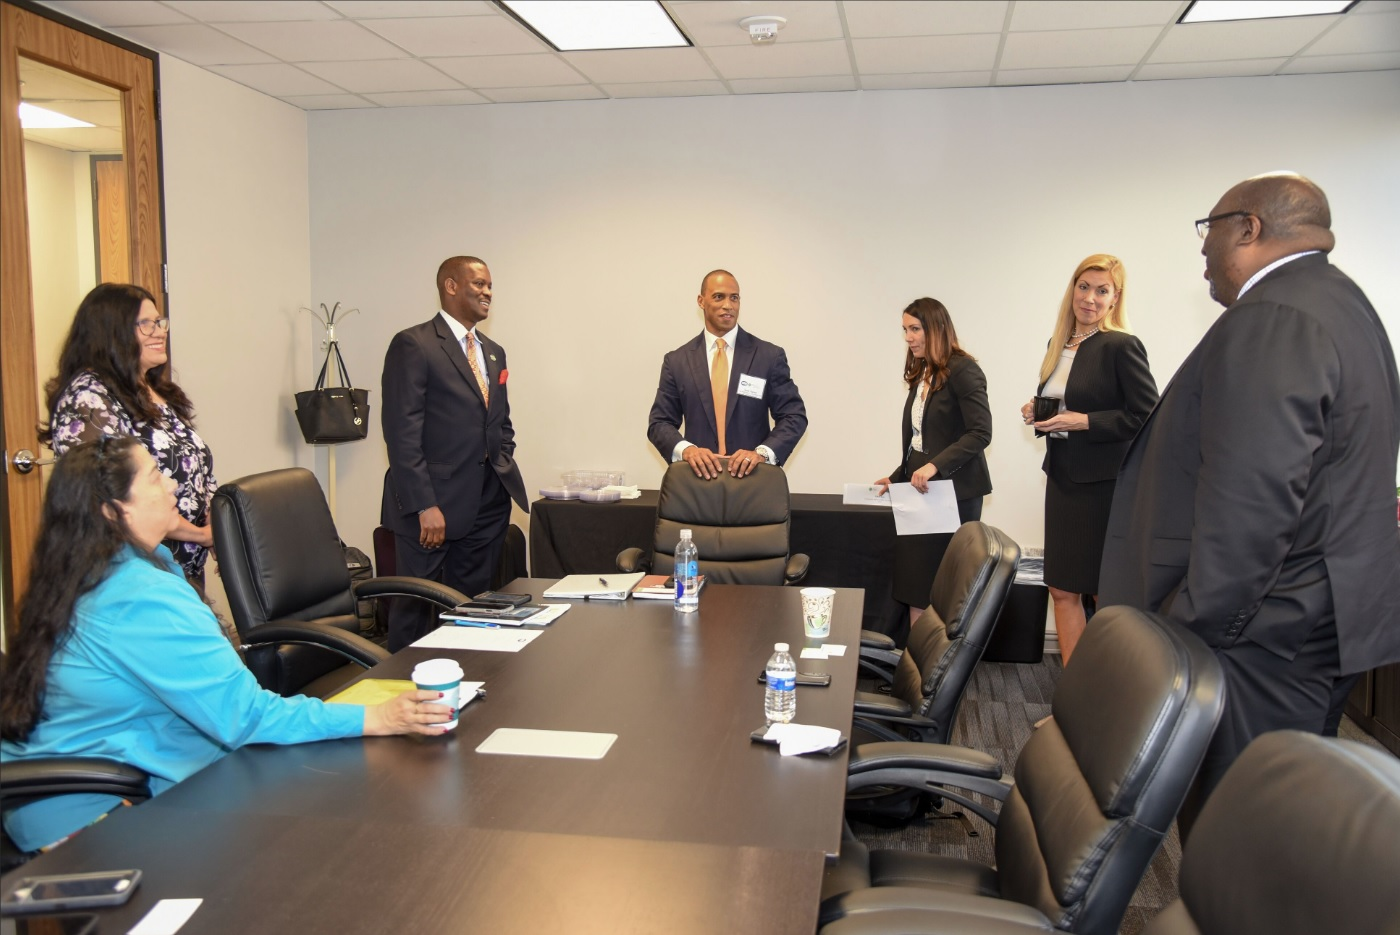 Executive Director Turner joins New Orleans community leaders to discuss Opportunity Zones